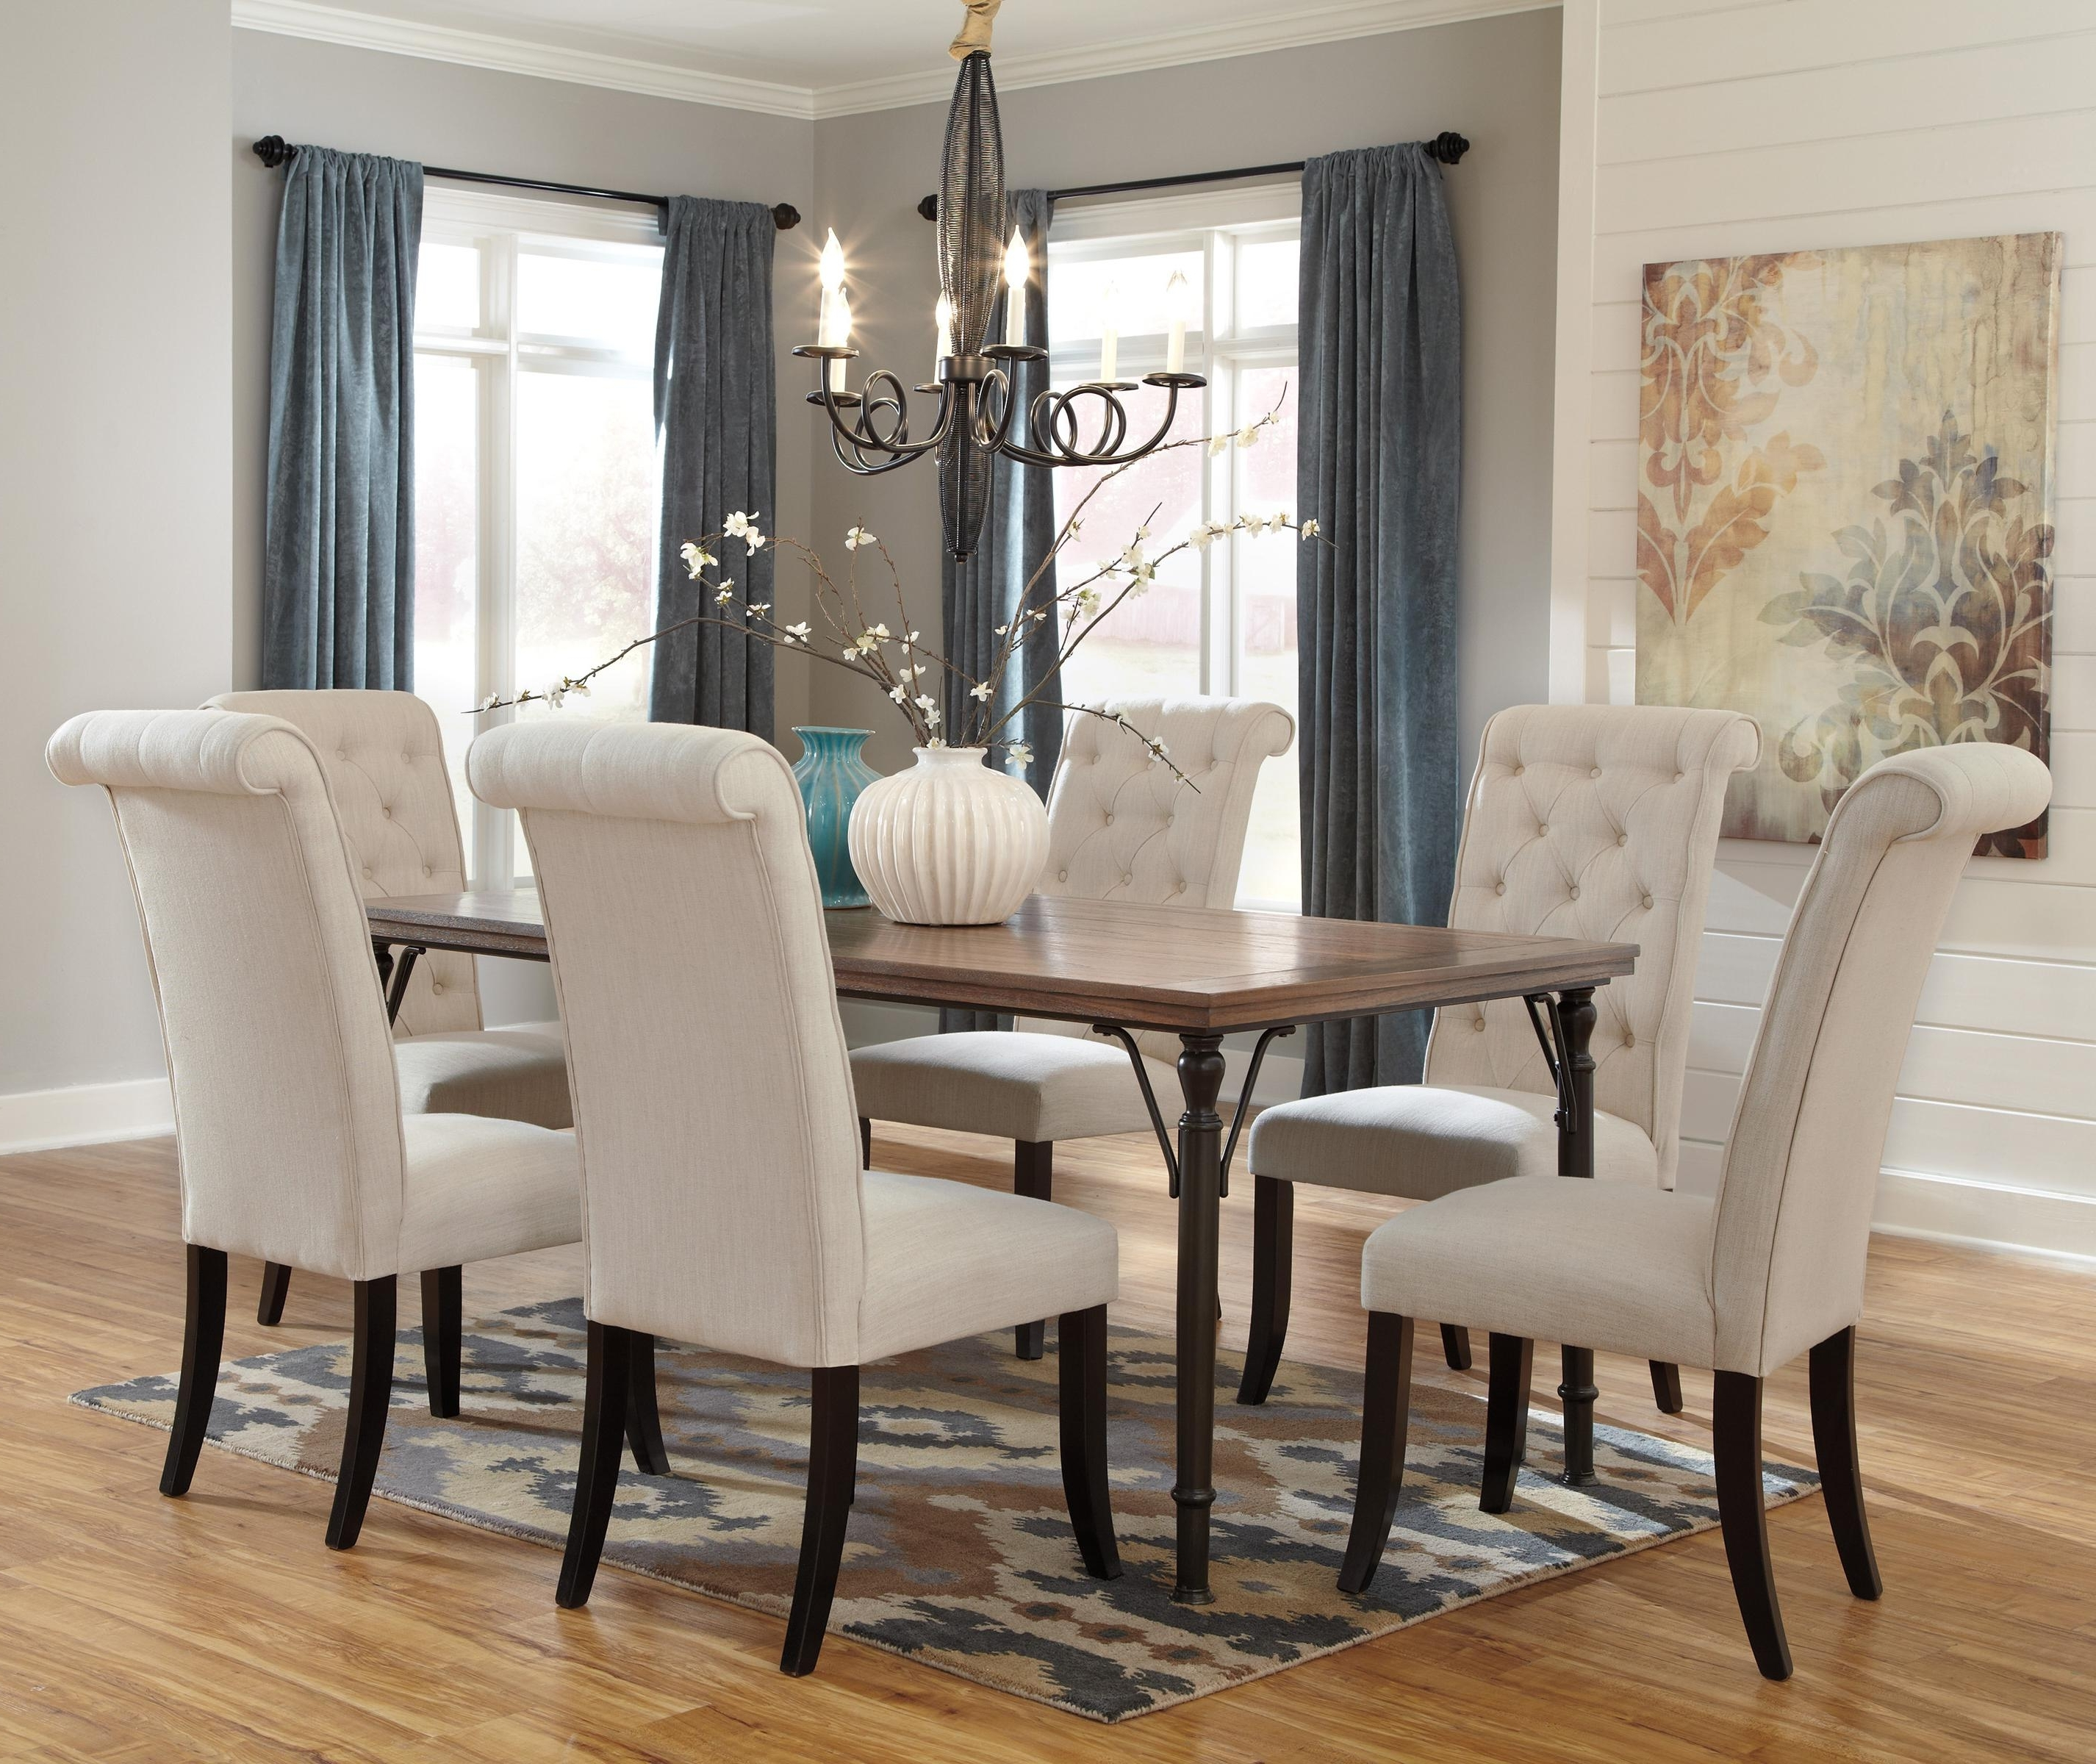 7-Piece Rectangular Dining Room Table Set W/ Wood Top & Metal Legs intended for Current Parquet 7 Piece Dining Sets